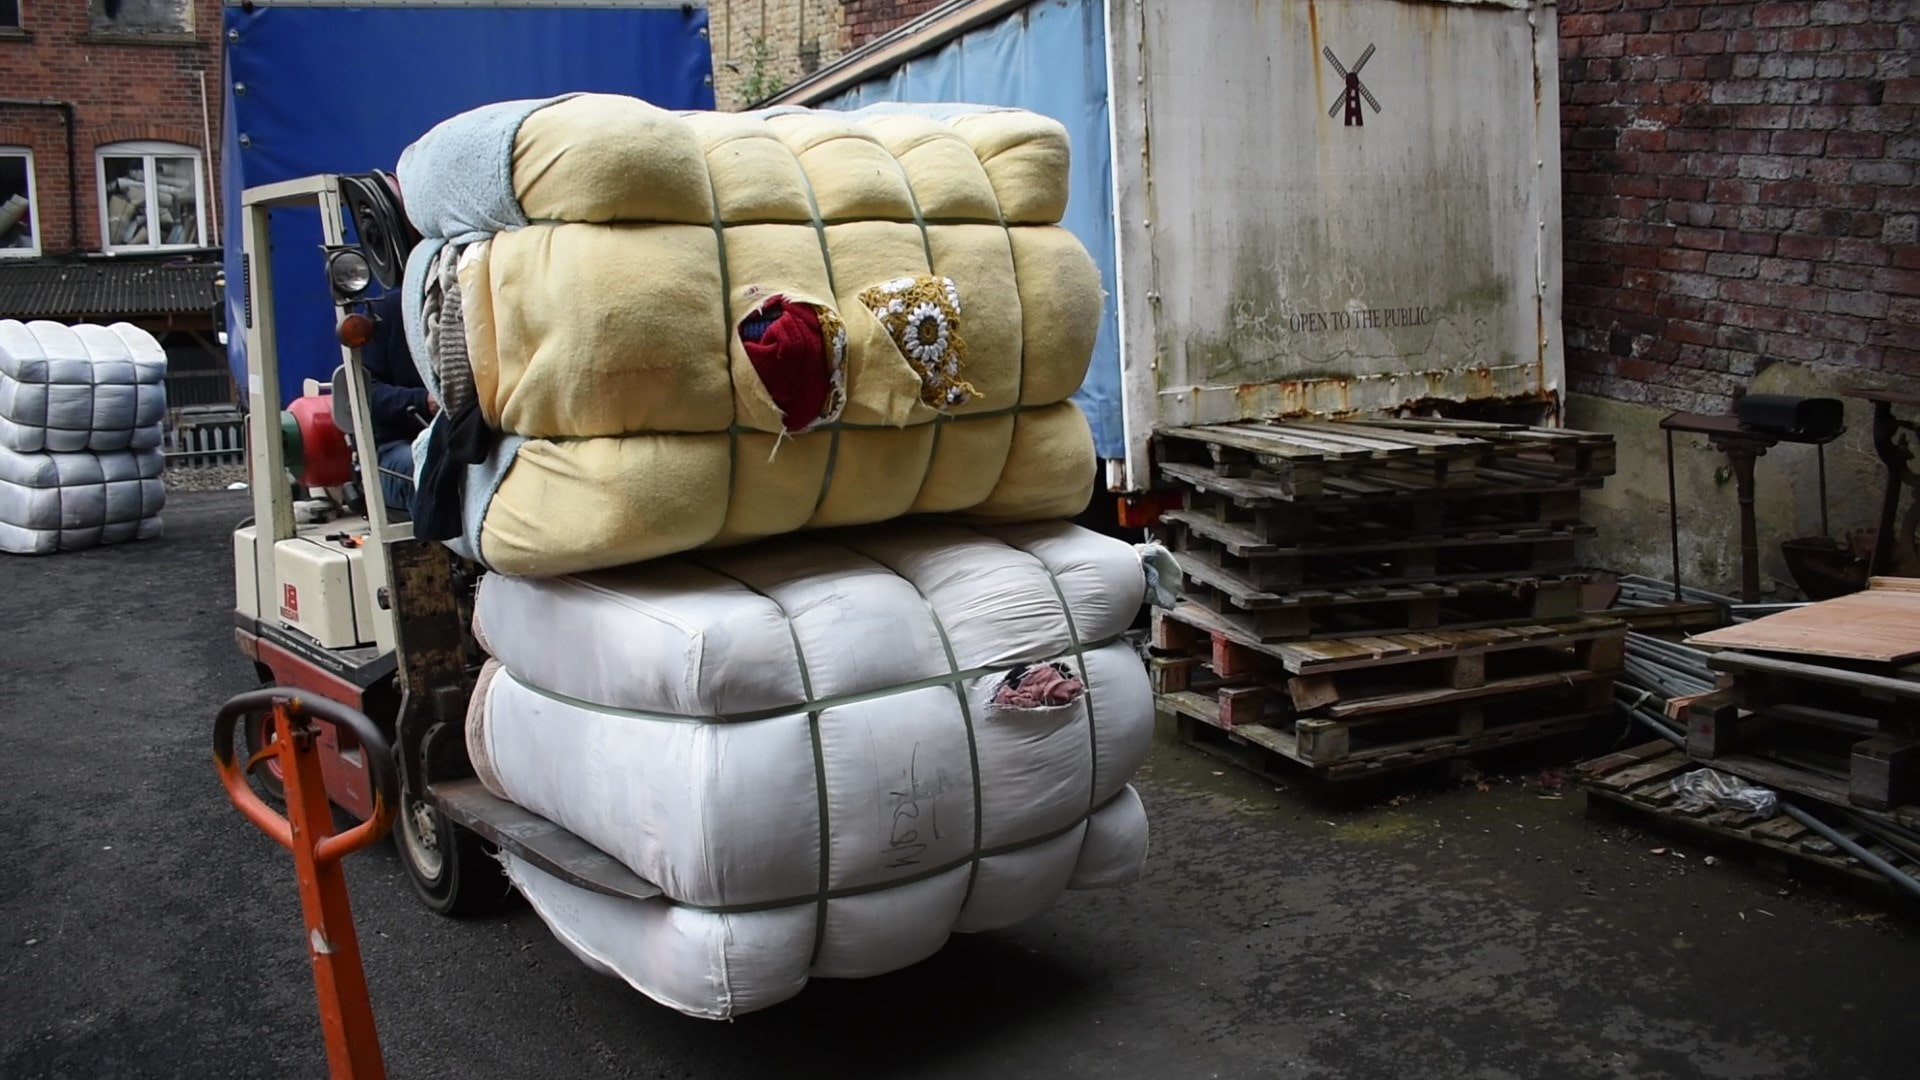 unloading bales of wool clothing for recycling